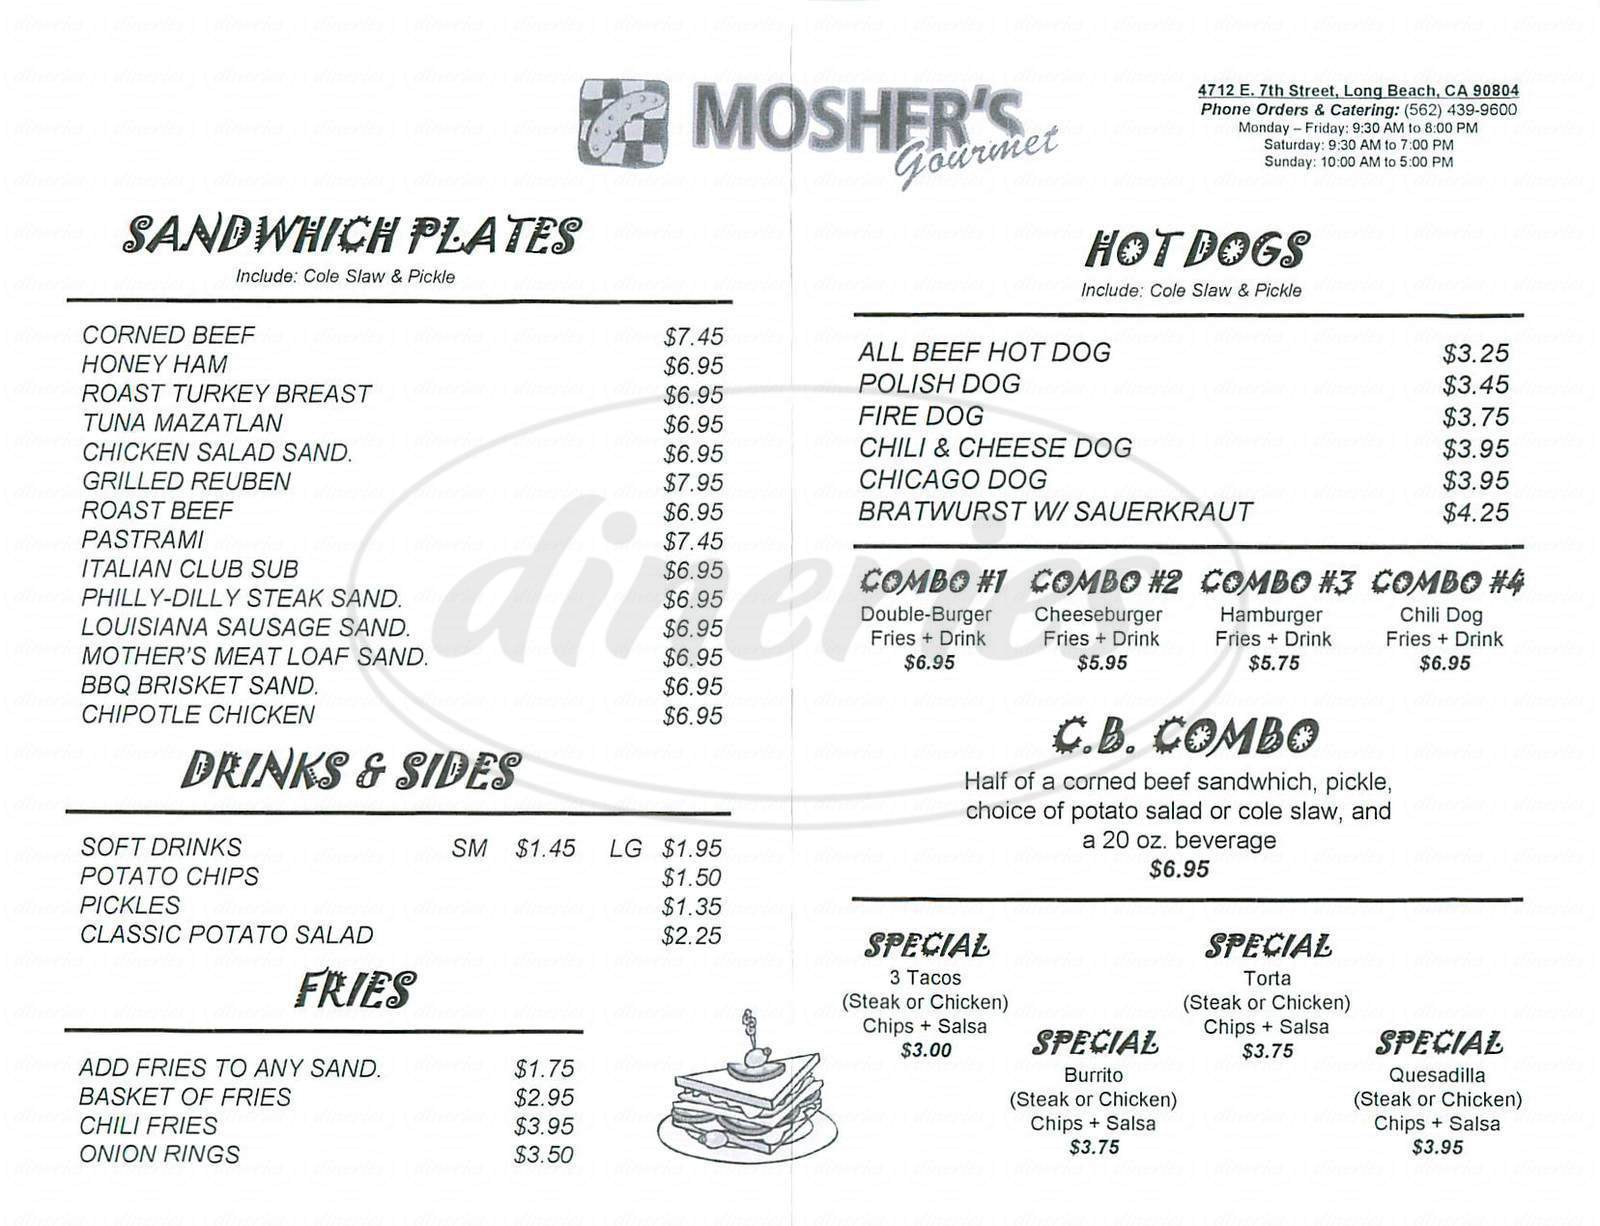 menu for Moshers Gourmet